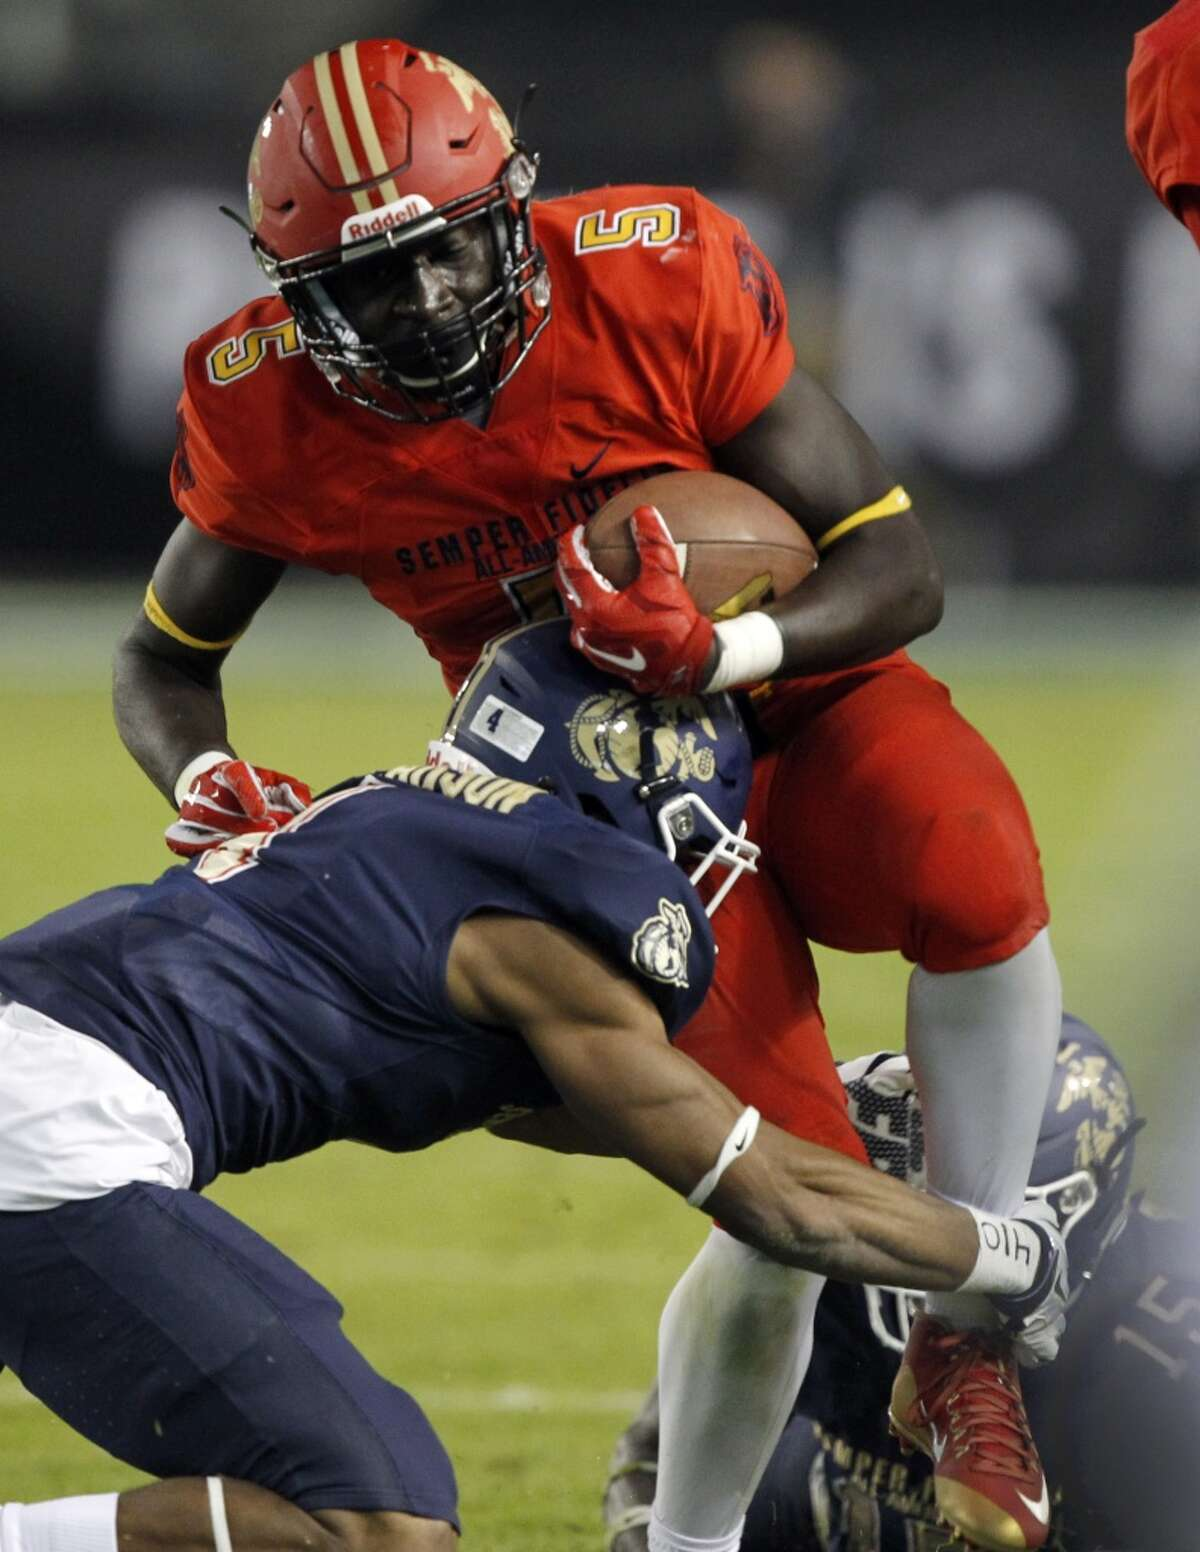 West running back D'Vaughn Pennamon, right, leaps into East corner back Zech McPherson, left, during the first half of the Semper Fidelis All-American Bowl East West high school football game in Carson, Calif., Sunday, Jan. 3, 2016. (AP Photo/Alex Gallardo)